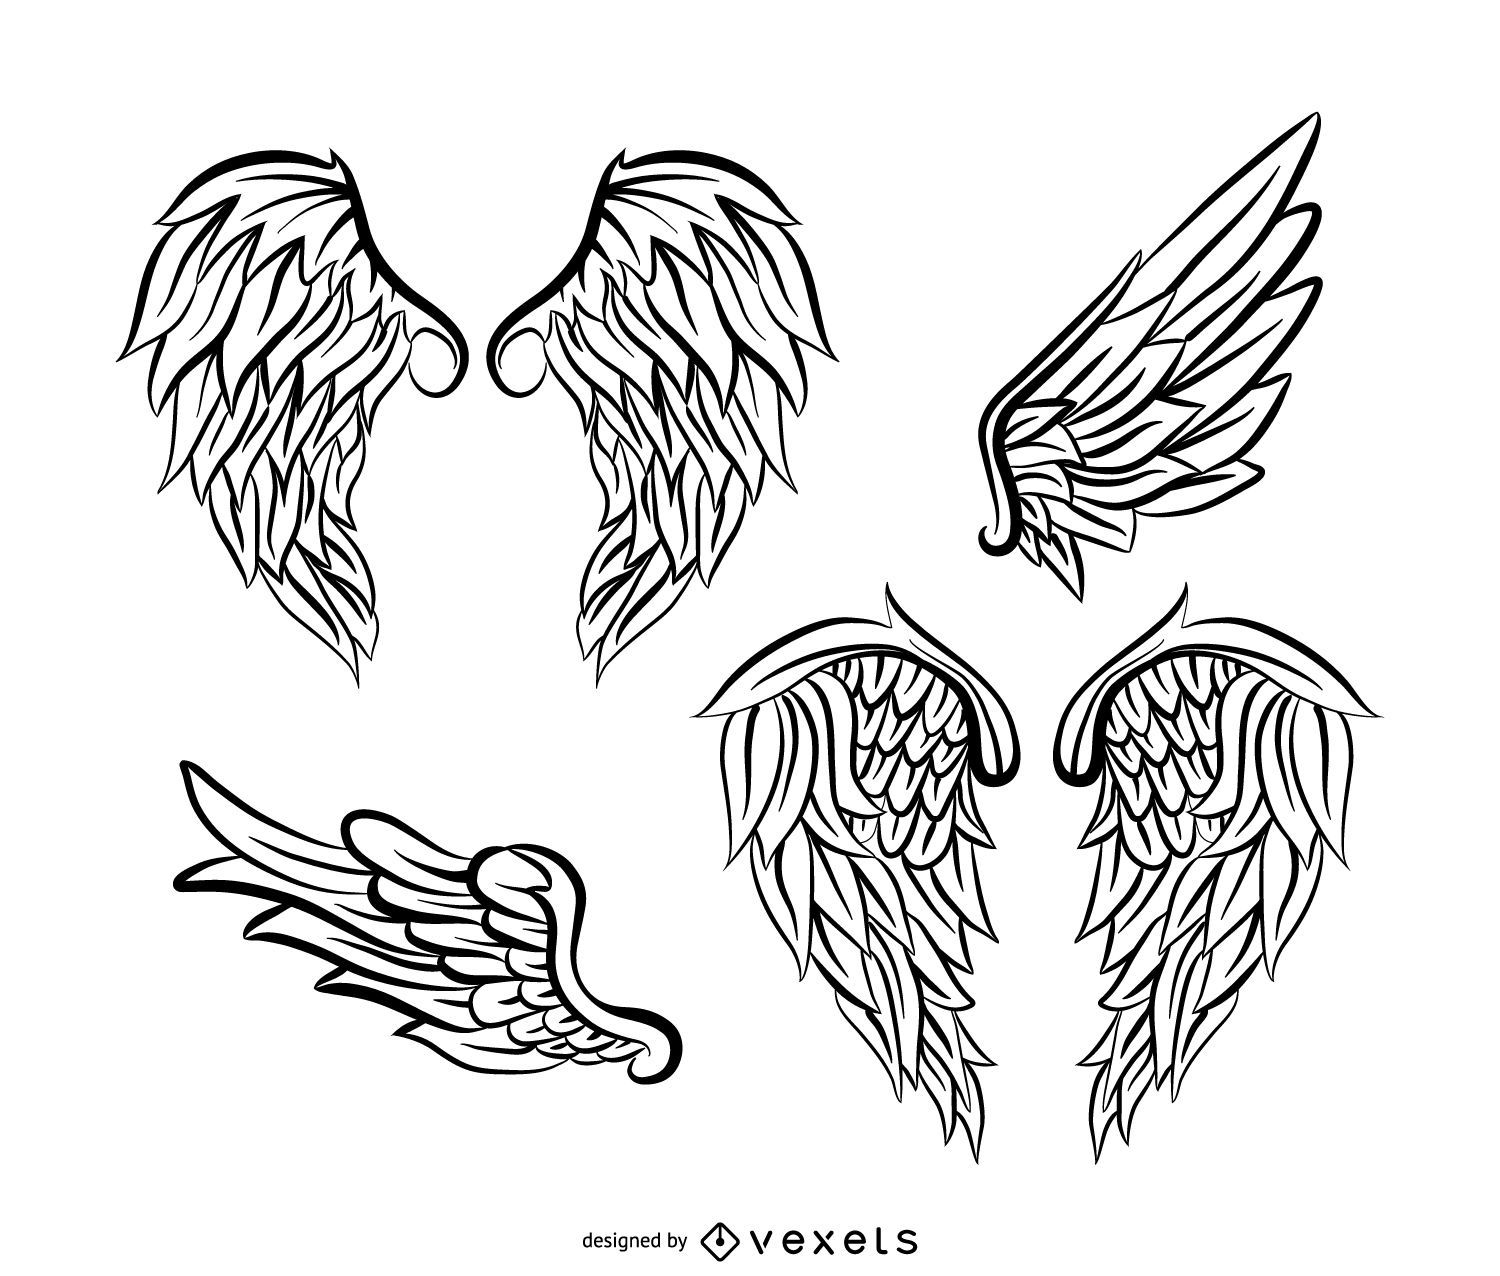 Stock Illustration High Power Engine Drawing Car Sign Image45954561 together with Coats 5040a Parts besides Angel Wings Illustration Pack With Feathers in addition Hot Wheels in addition 228810 Orbeas Gain E Bike Looks Just Normal Road Bike Packs 250w Motor. on motorcycle styles